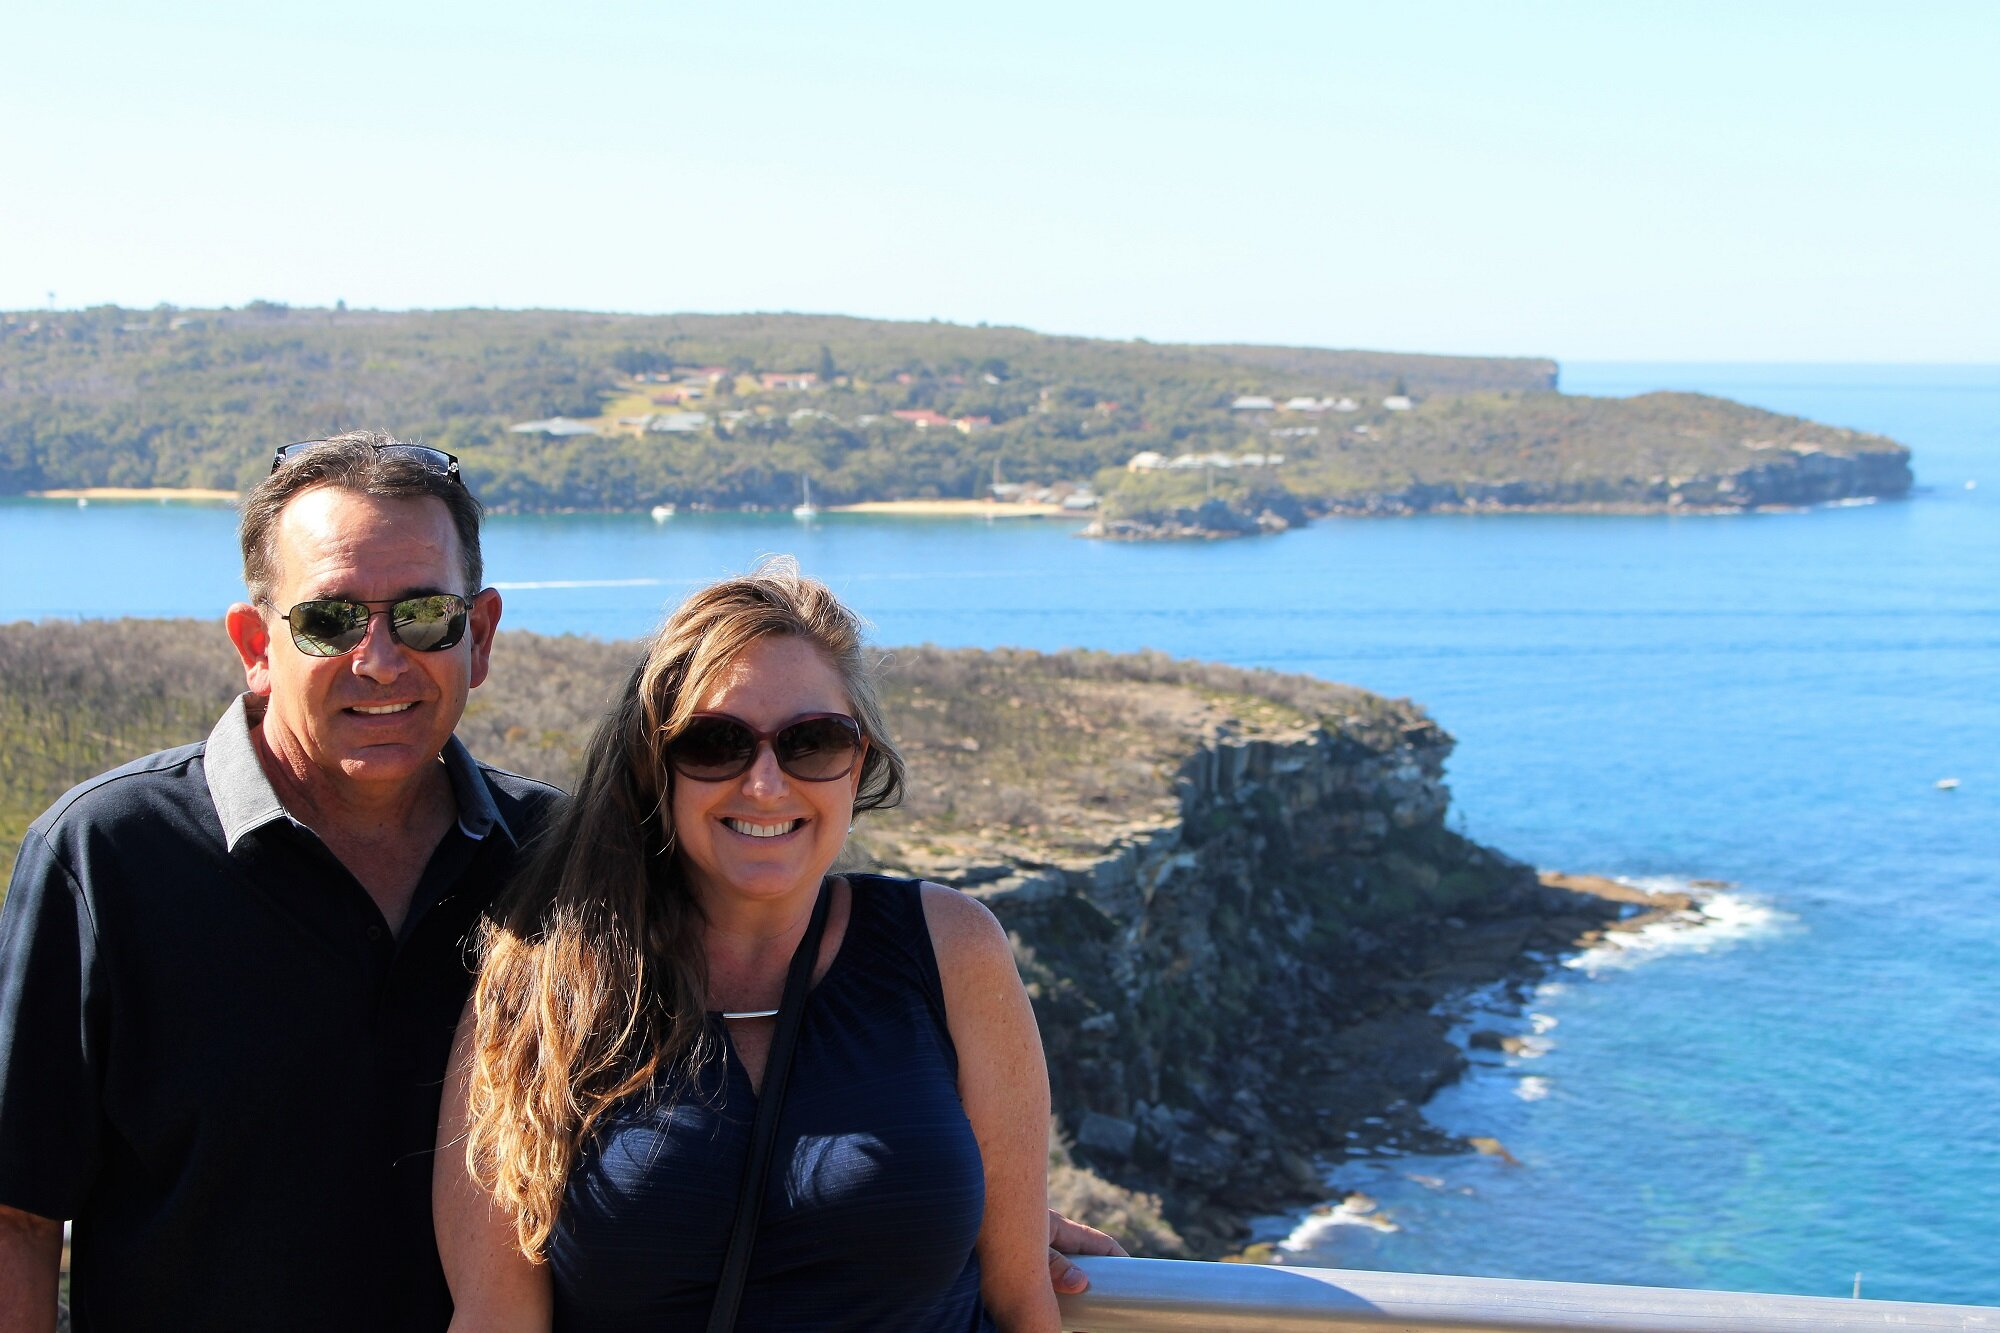 Best off the beaten path tour ever! - My husband and I were in Sydney for our 24th anniversary. We wanted to a tour that took us some of the places that were not so touristy and